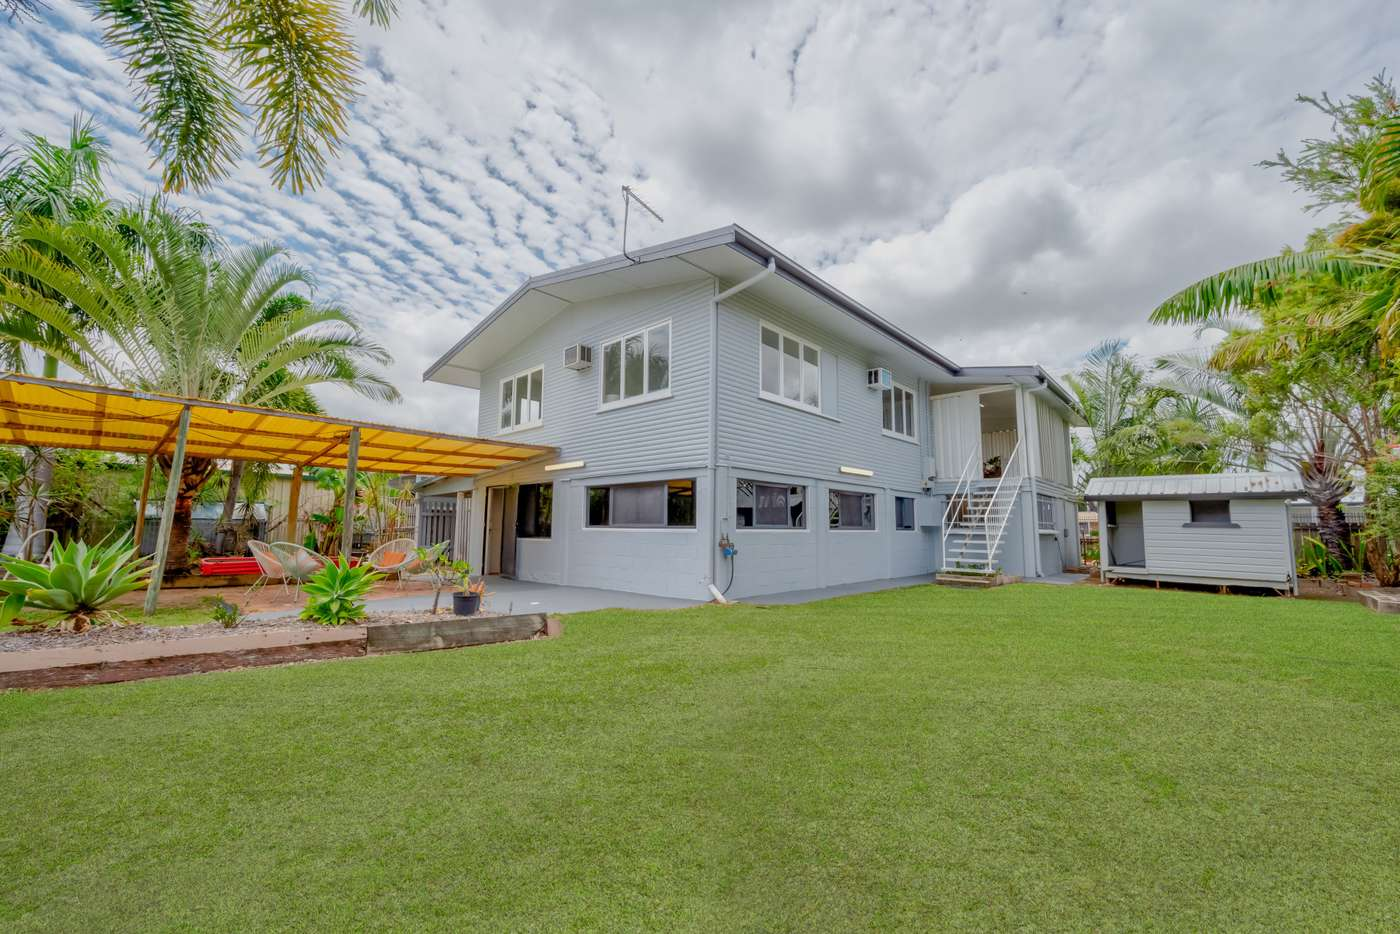 Main view of Homely house listing, 151 Palmerston Street, Currajong QLD 4812